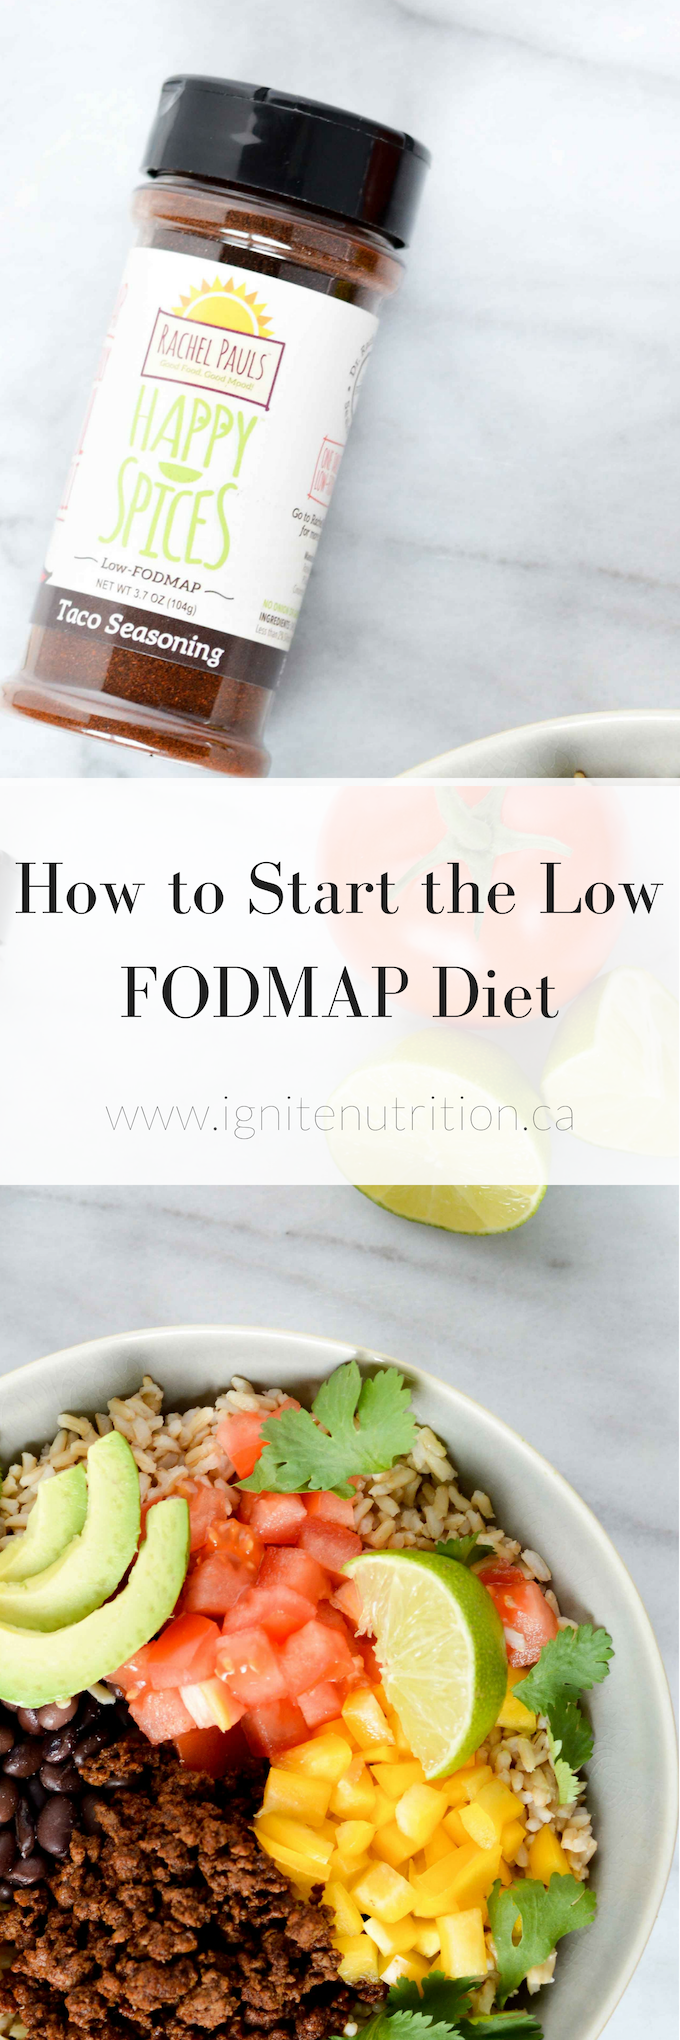 starting the low FODMAP diet can be overwhelming. Learn how to start - without the stress - with these 5 top tips to implement an IBS diet - Andrea Hardy is a registered dietitian and gut health expert from Calgary Alberta